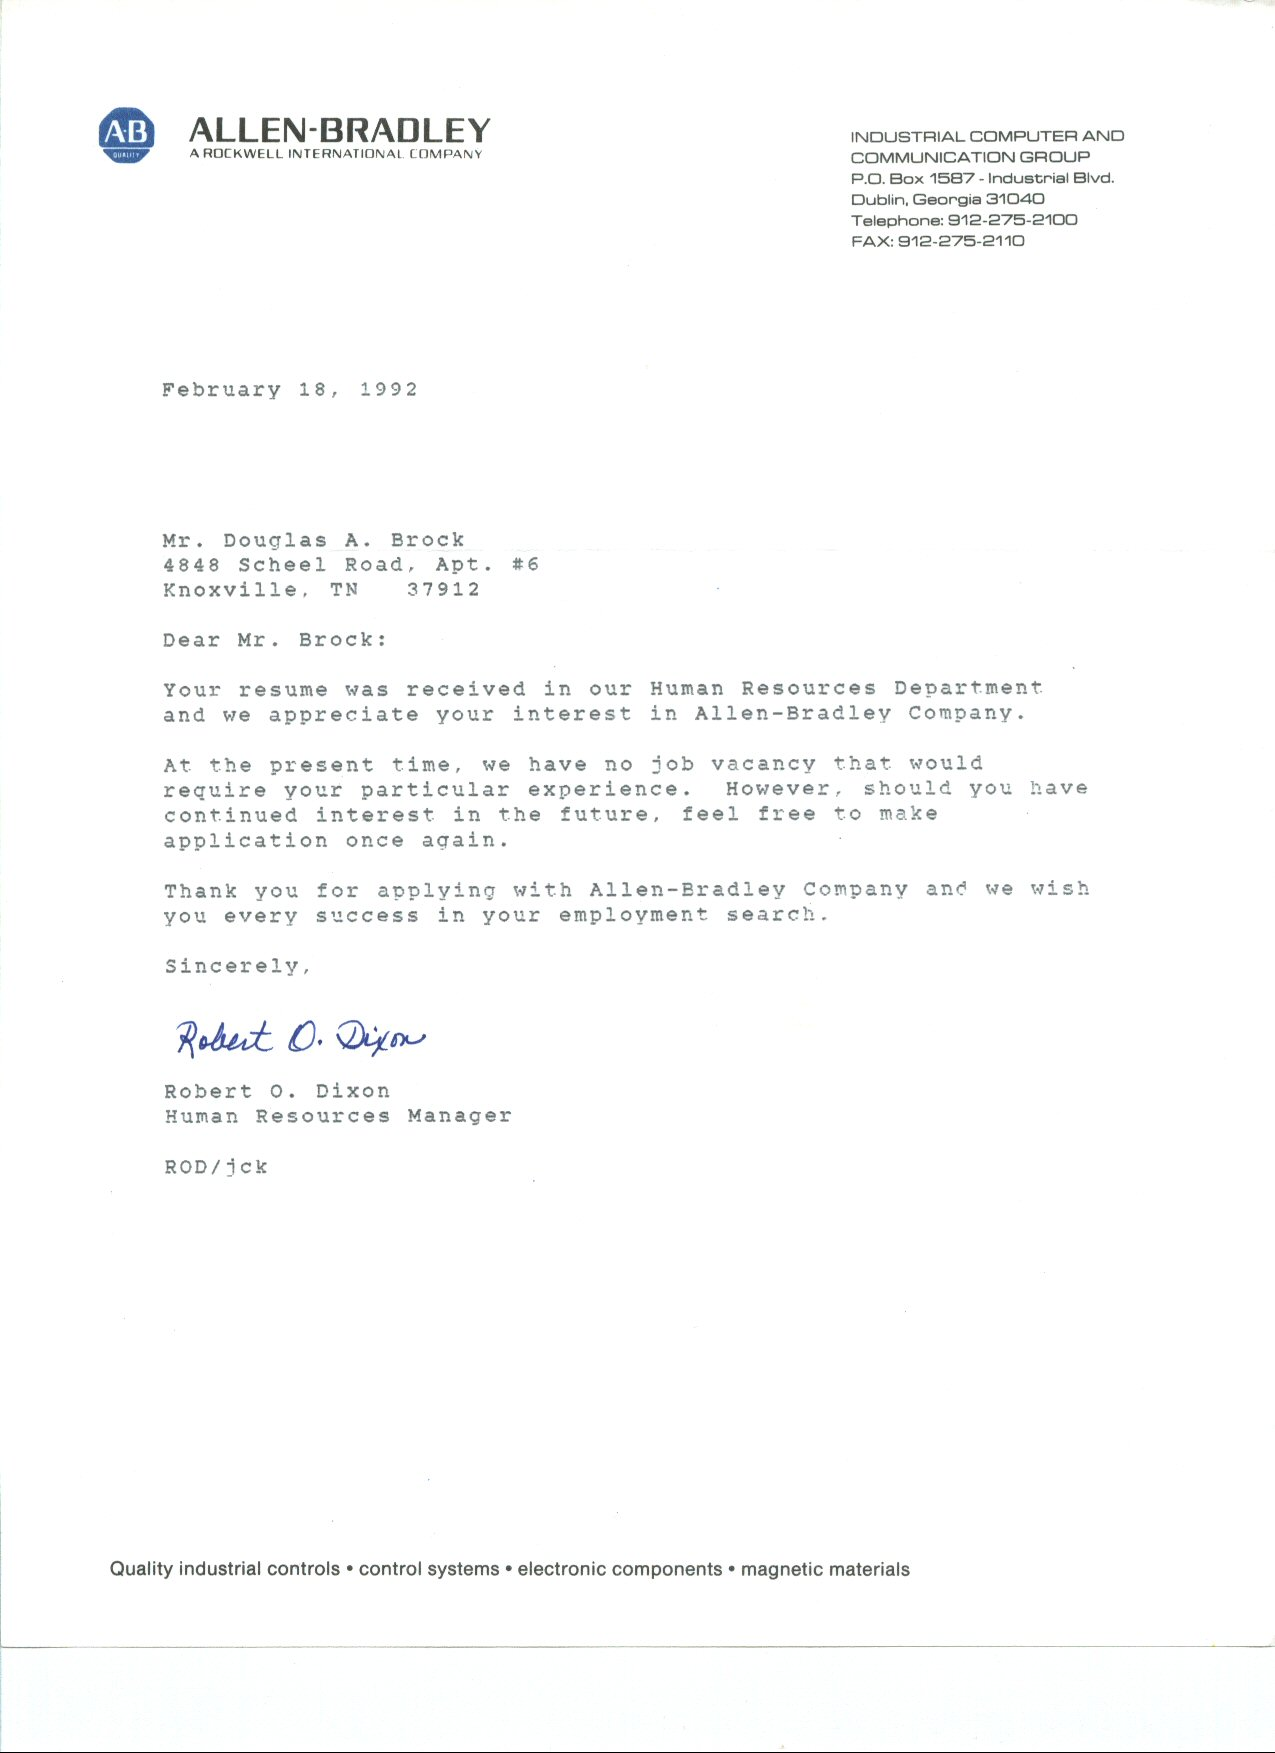 college rejection letter template - sample annual leave request letter